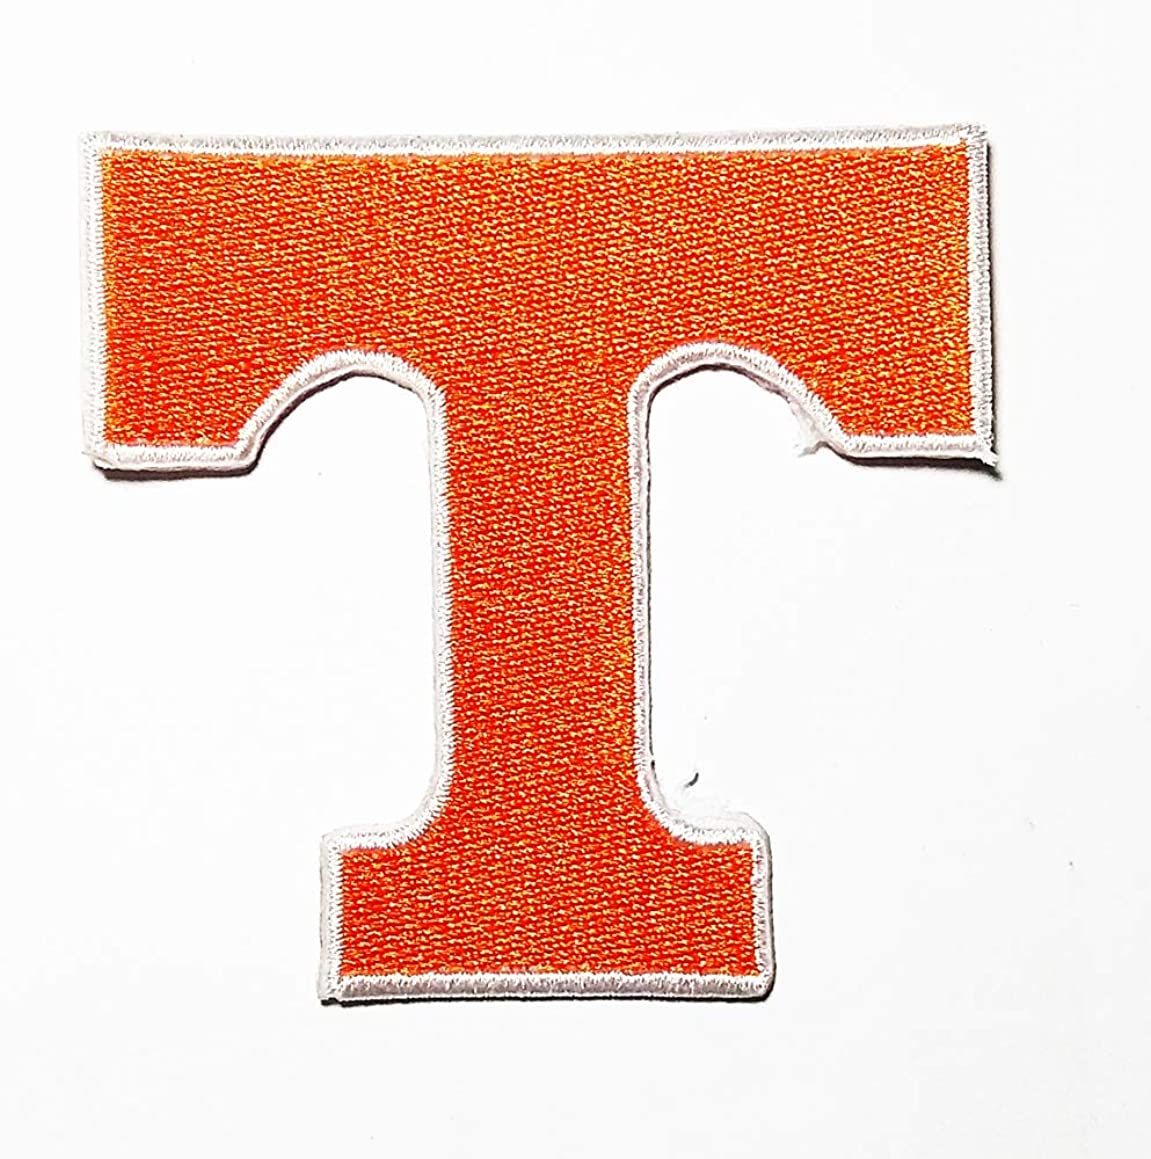 Letter T Logo Patch Embroidered Sew Iron On Patches Badge Bags Hat Jeans Shoes T-Shirt Applique